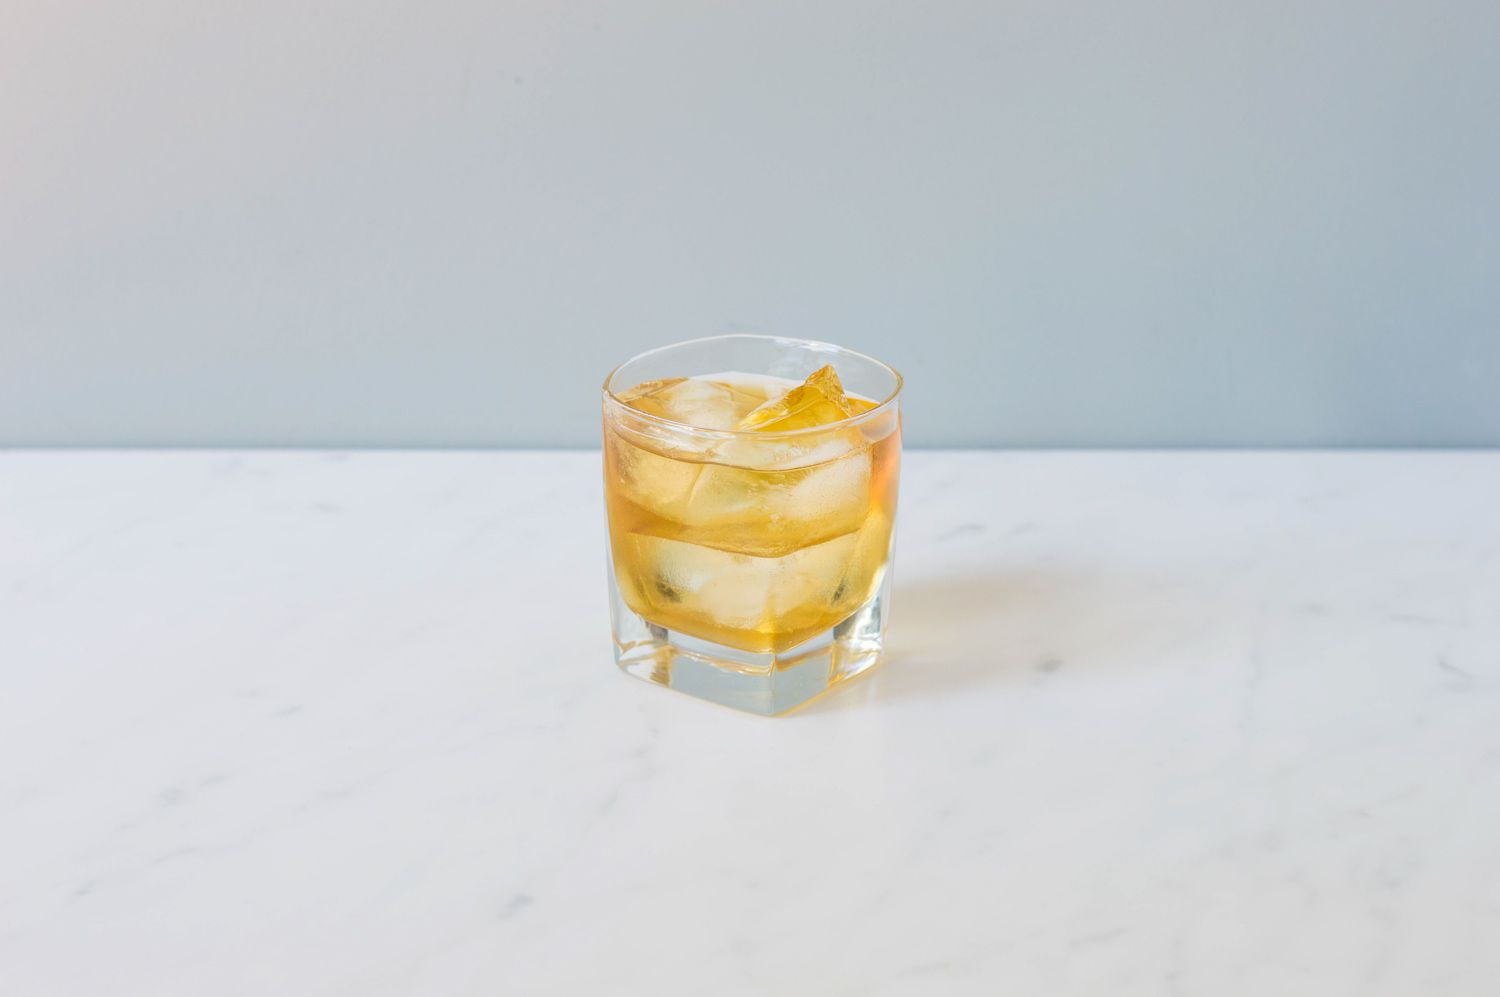 Rusty nail cocktail in an old-fashioned glass with ice